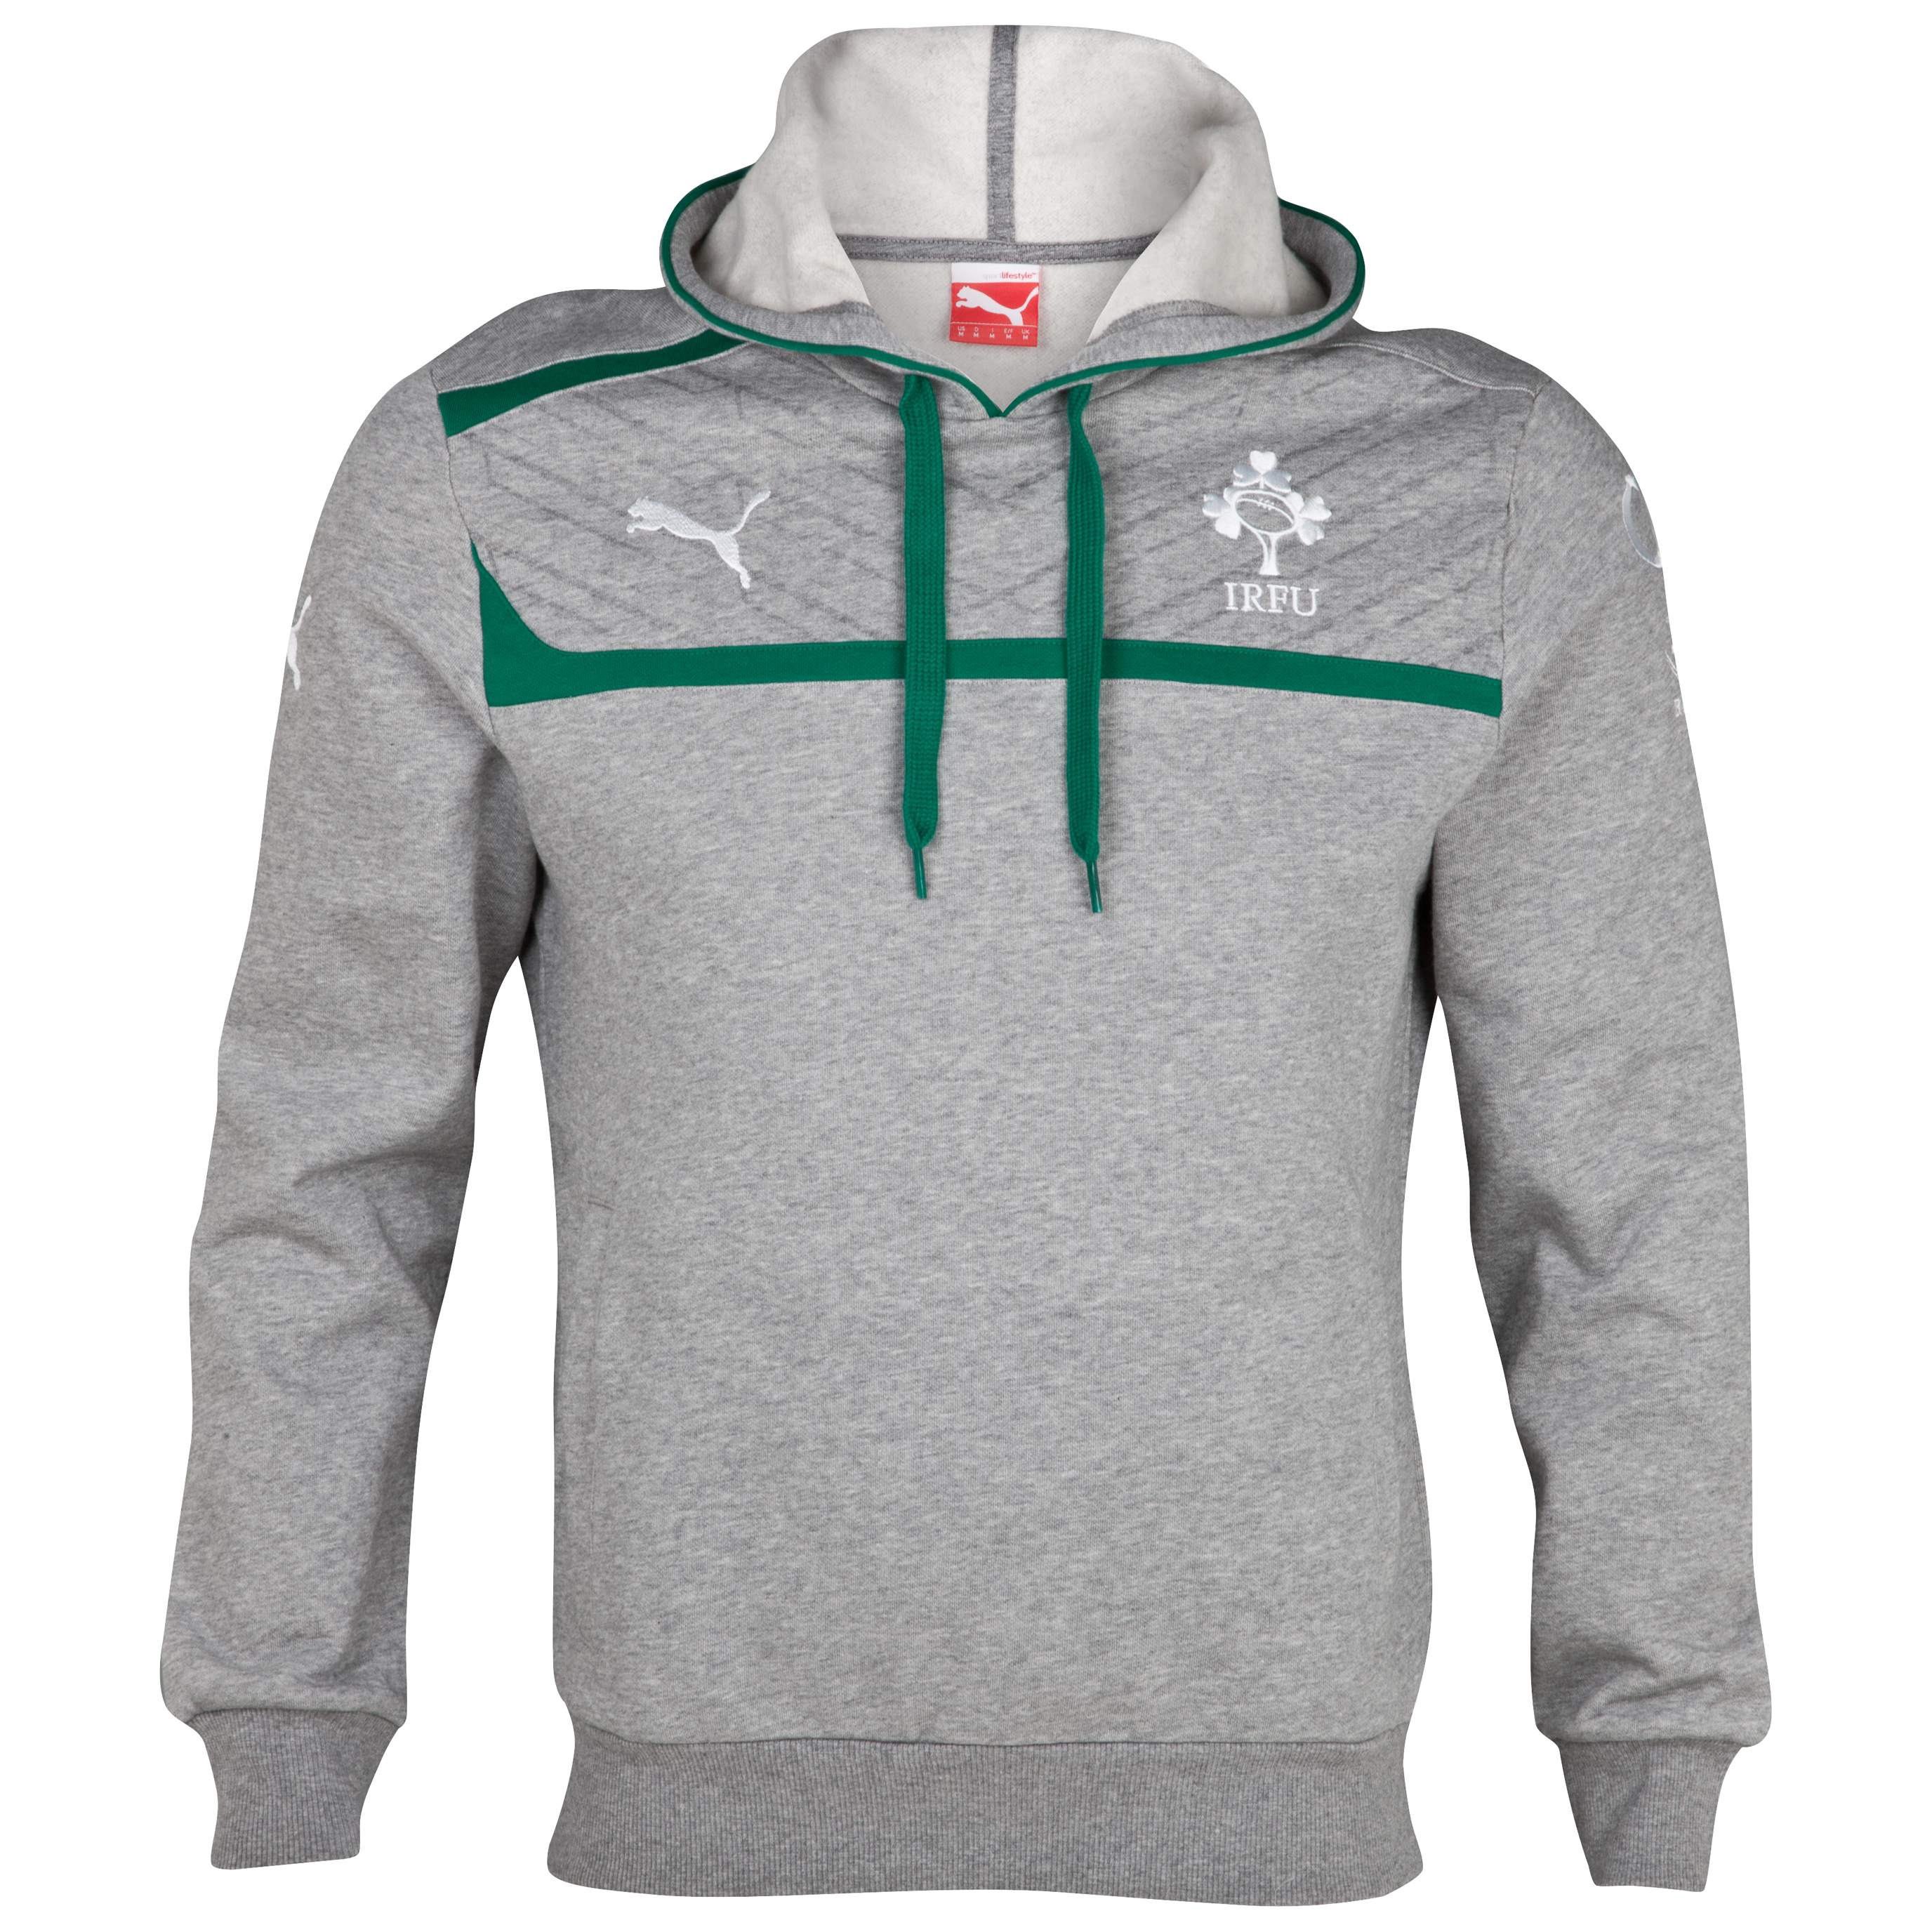 Ireland Rugby Overhead Hoody - Grey Marl/Power Green/White